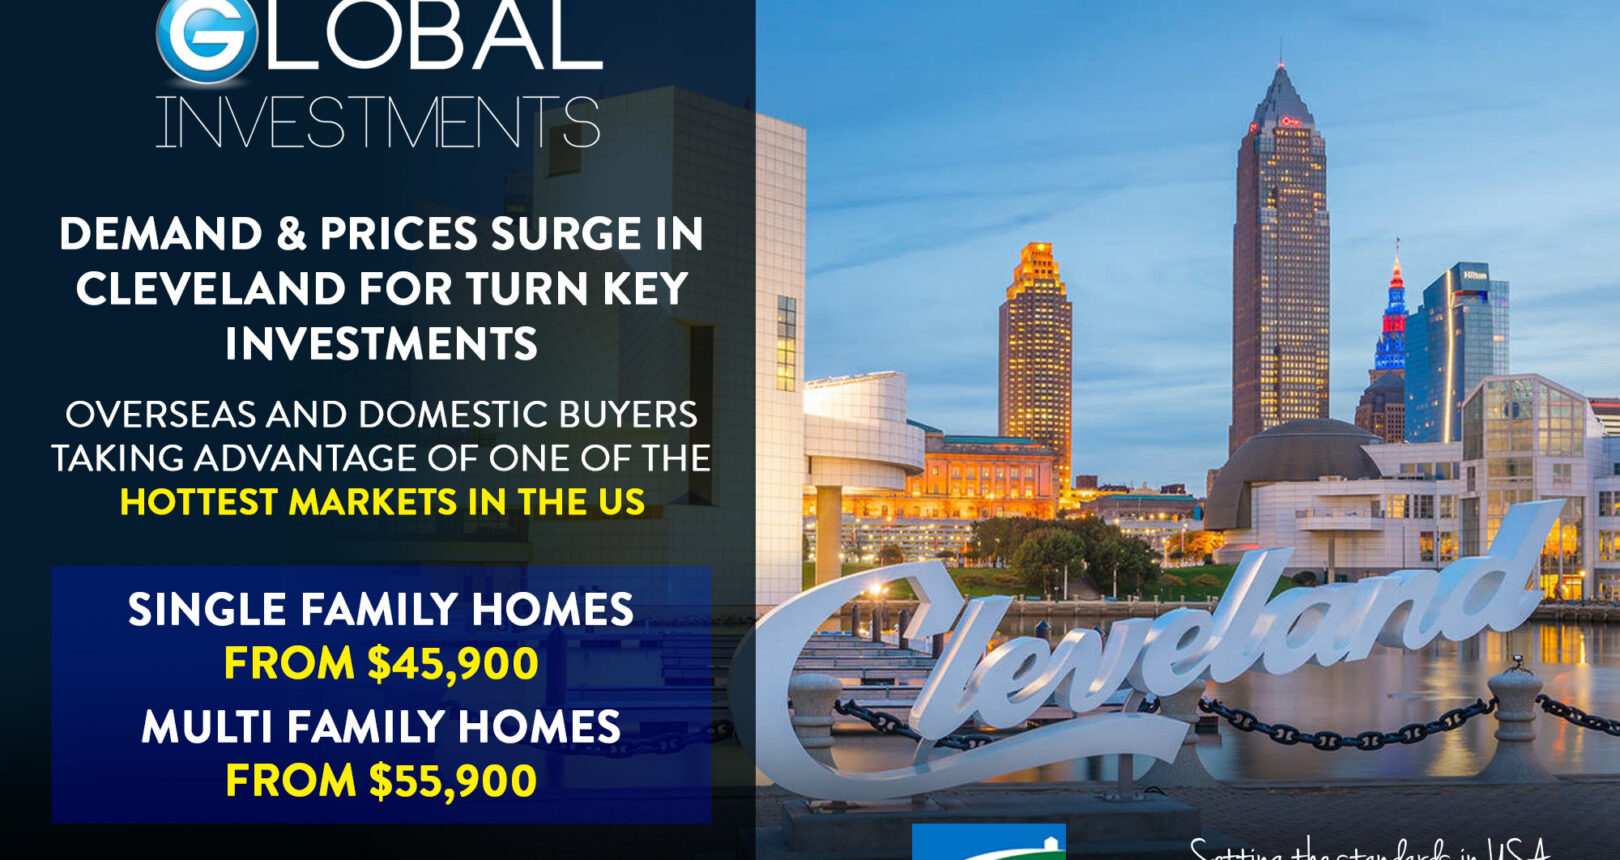 Demand and prices surge in Cleveland for turnkey investments